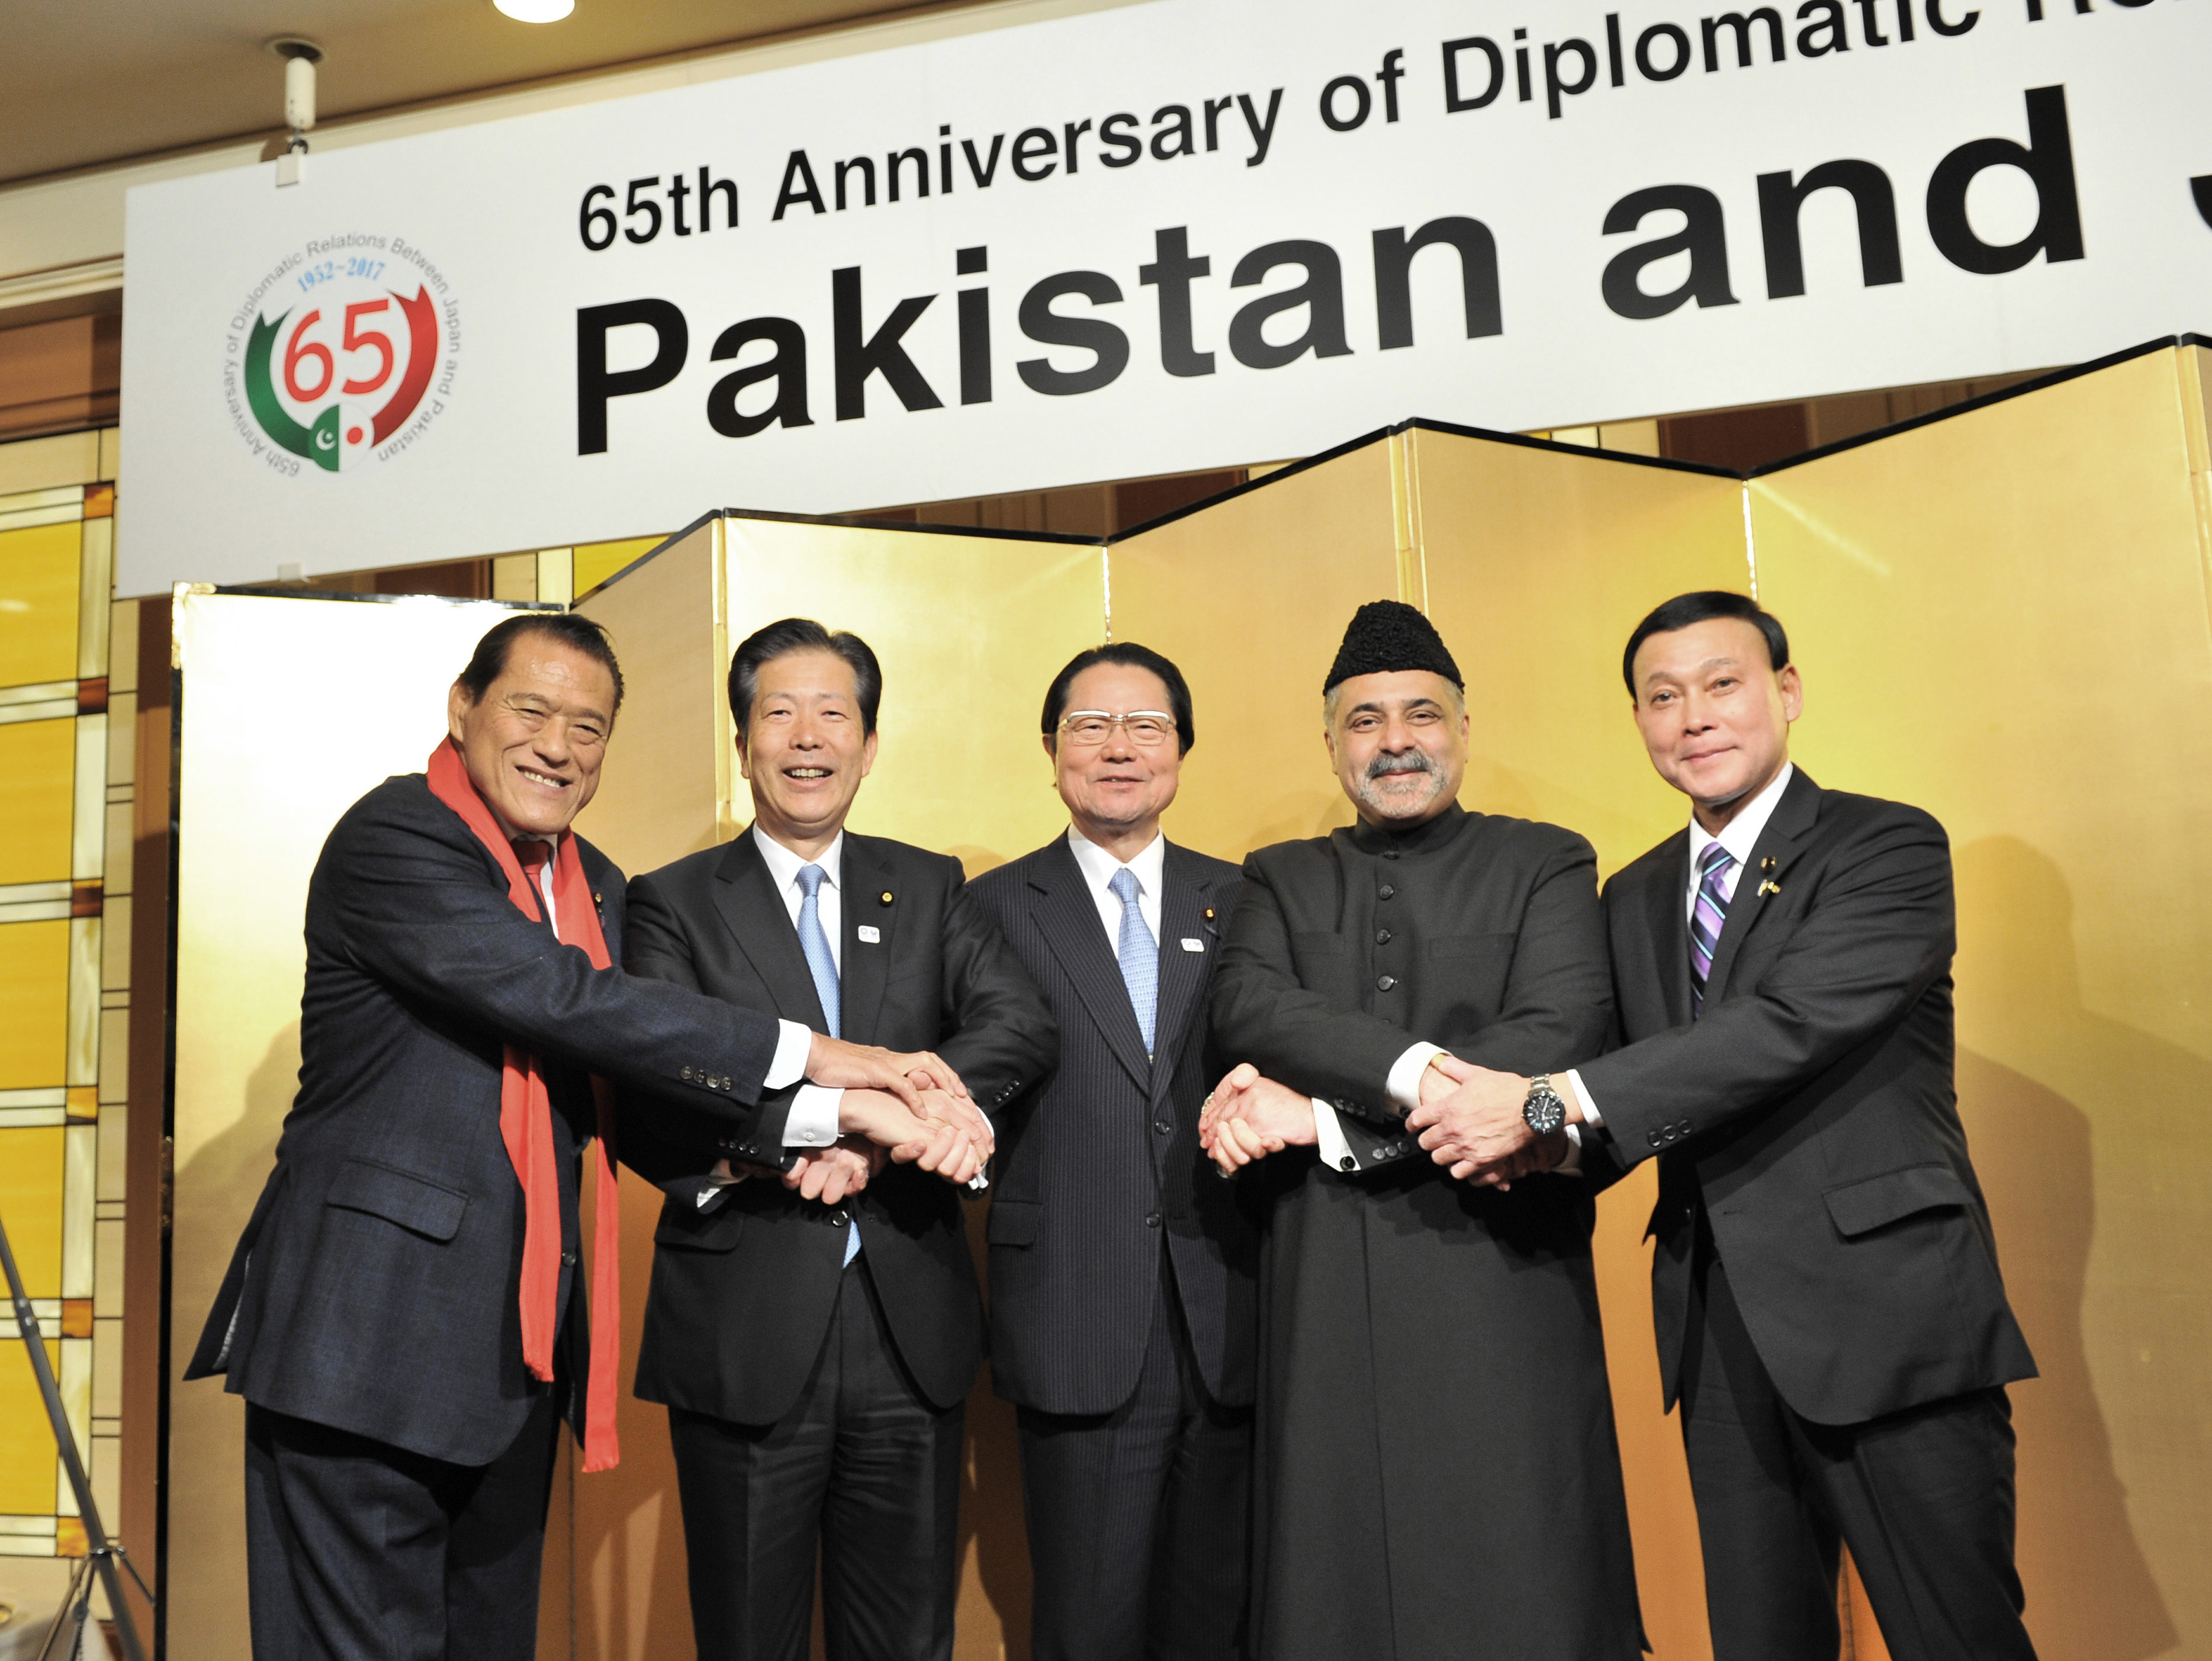 Pakistan's Ambassador Farukh Amil (second from right) joins hands with (from left) House of Councillors member Antonio Inoki,  Komeito President Natsuo Yamaguchi, Japan-Pakistan Parliamentarians' Friendship League President Seishiro Eto  and Parliamentary Vice Minister for Foreign Affairs Motome Takizawa during a reception to celebrate Pakistan national day and the 65th anniversary of diplomatic relations with Japan at the Hotel Okura, Tokyo, on March 23. |  YOSHIAKI MIURA